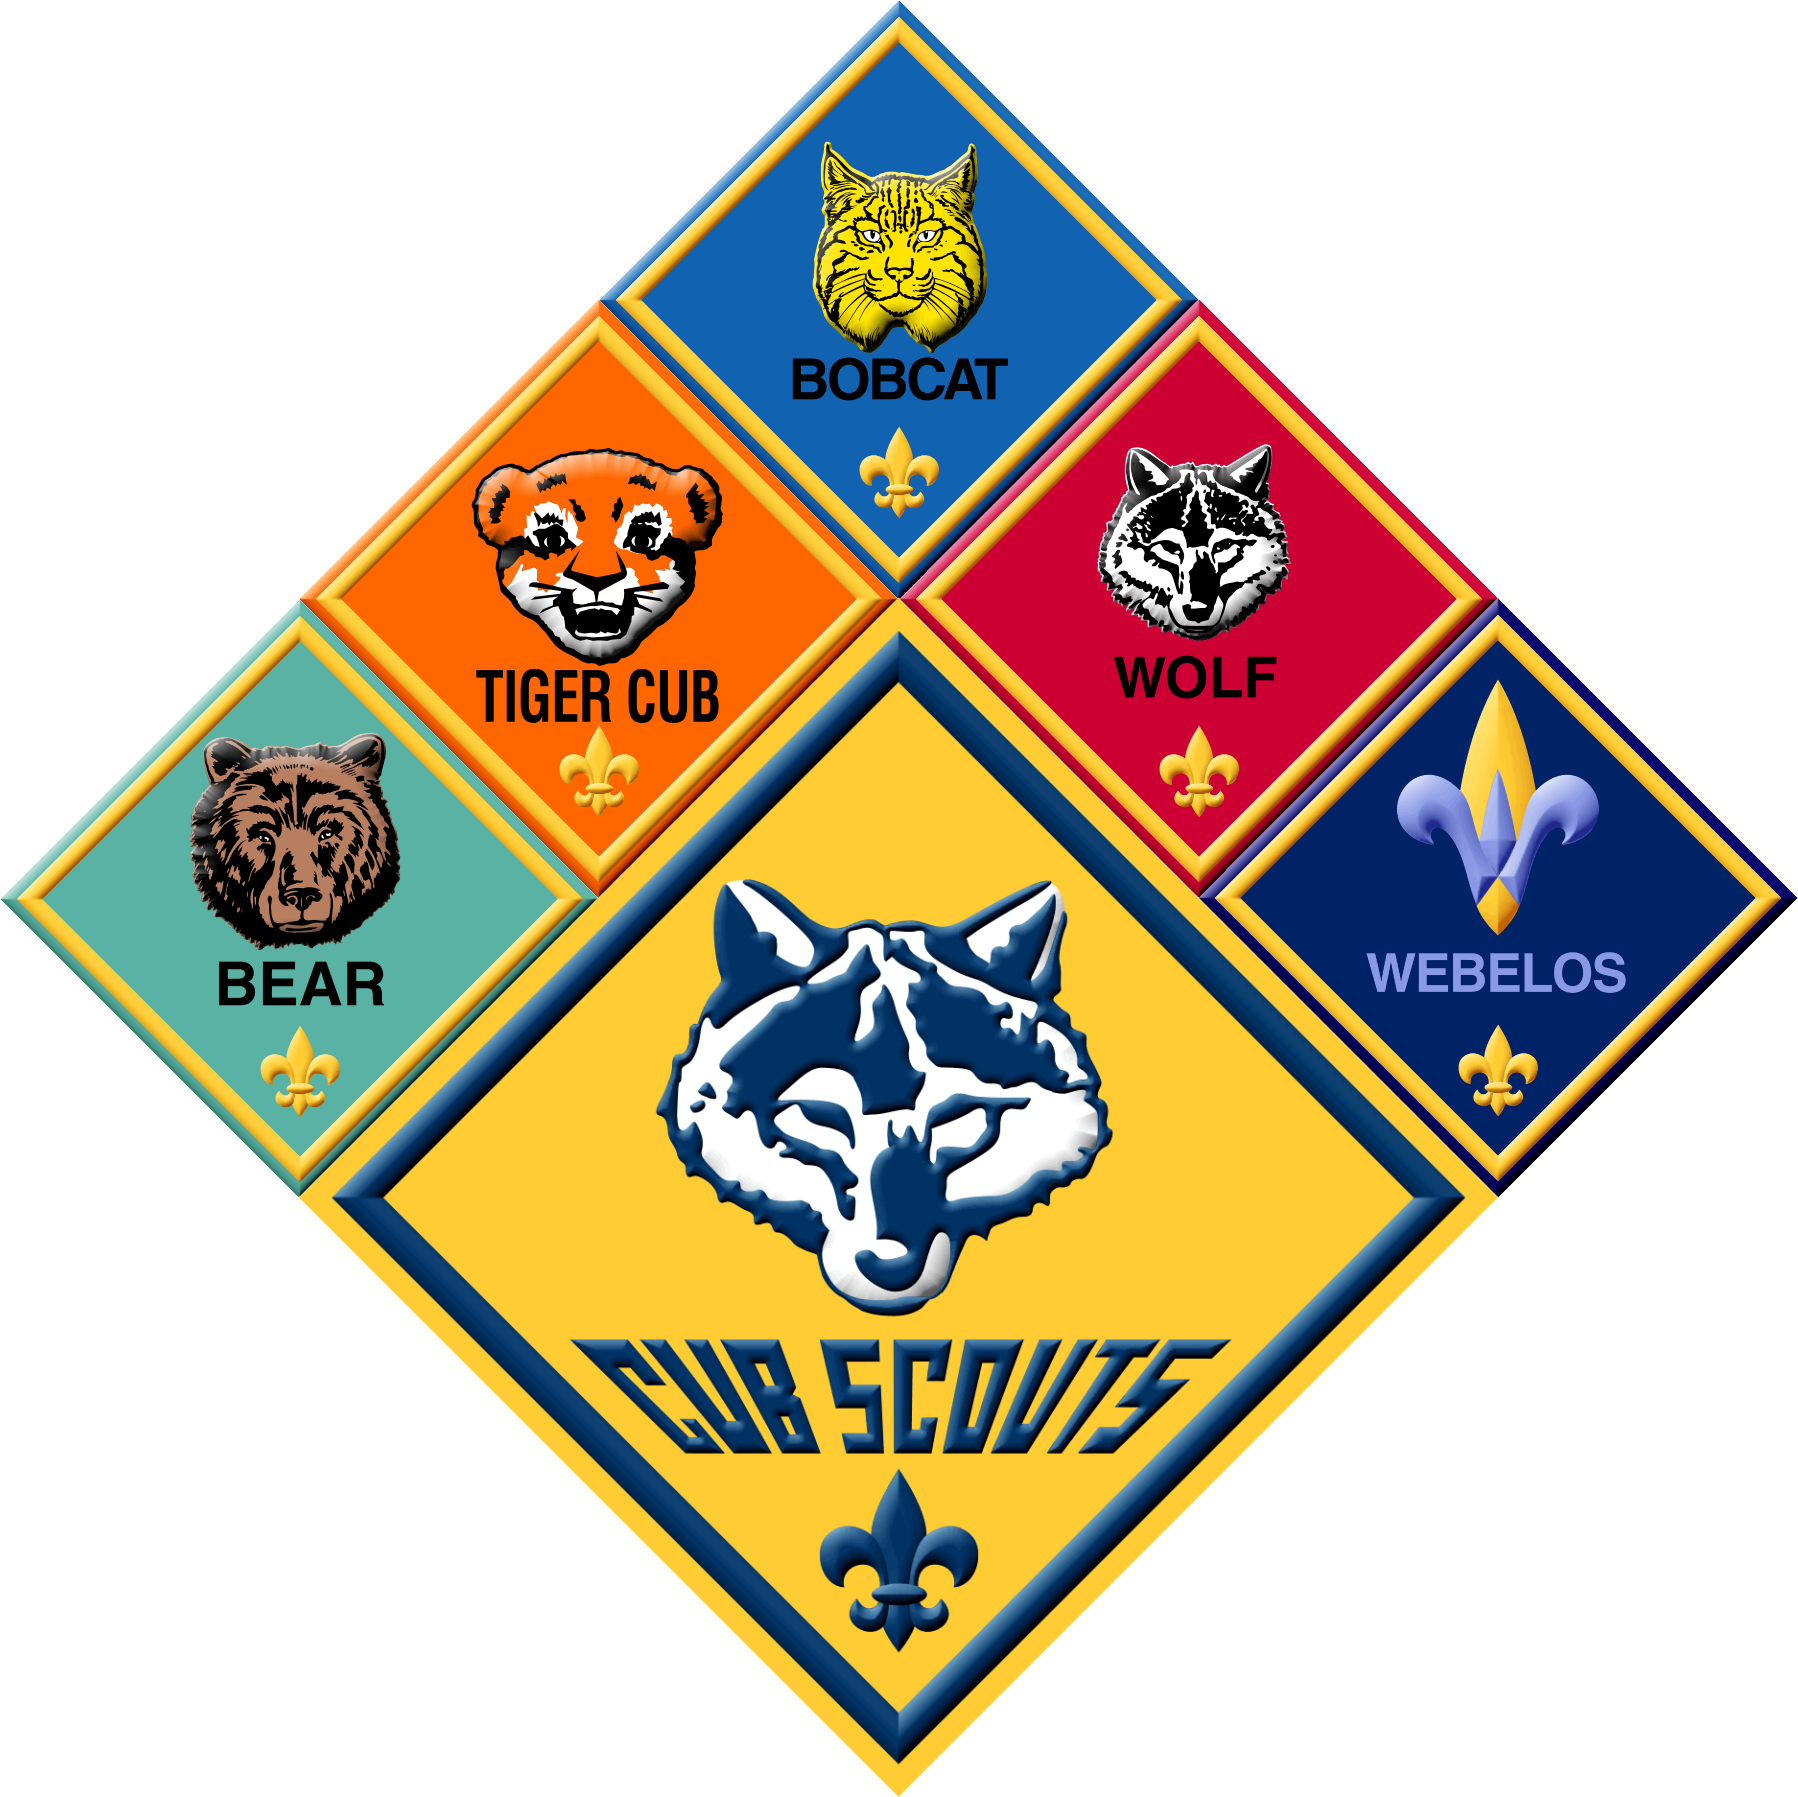 Wolf clipart tiger. Bear and webelos i